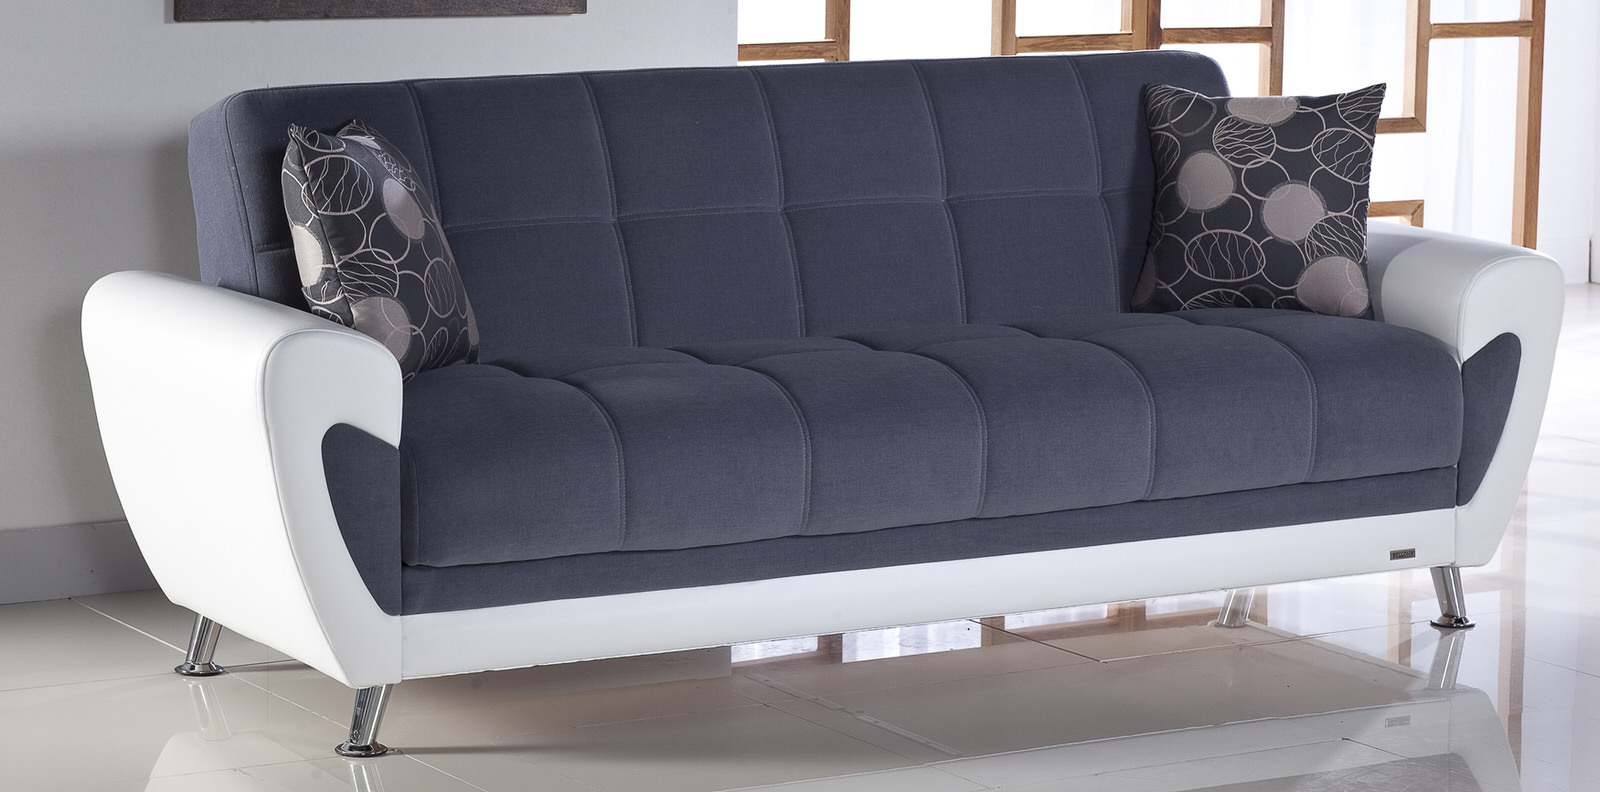 Duru Cozy Gray Convertible Sofa Bed Sunset Pertaining To Convertible Sofa Bed (#4 of 15)